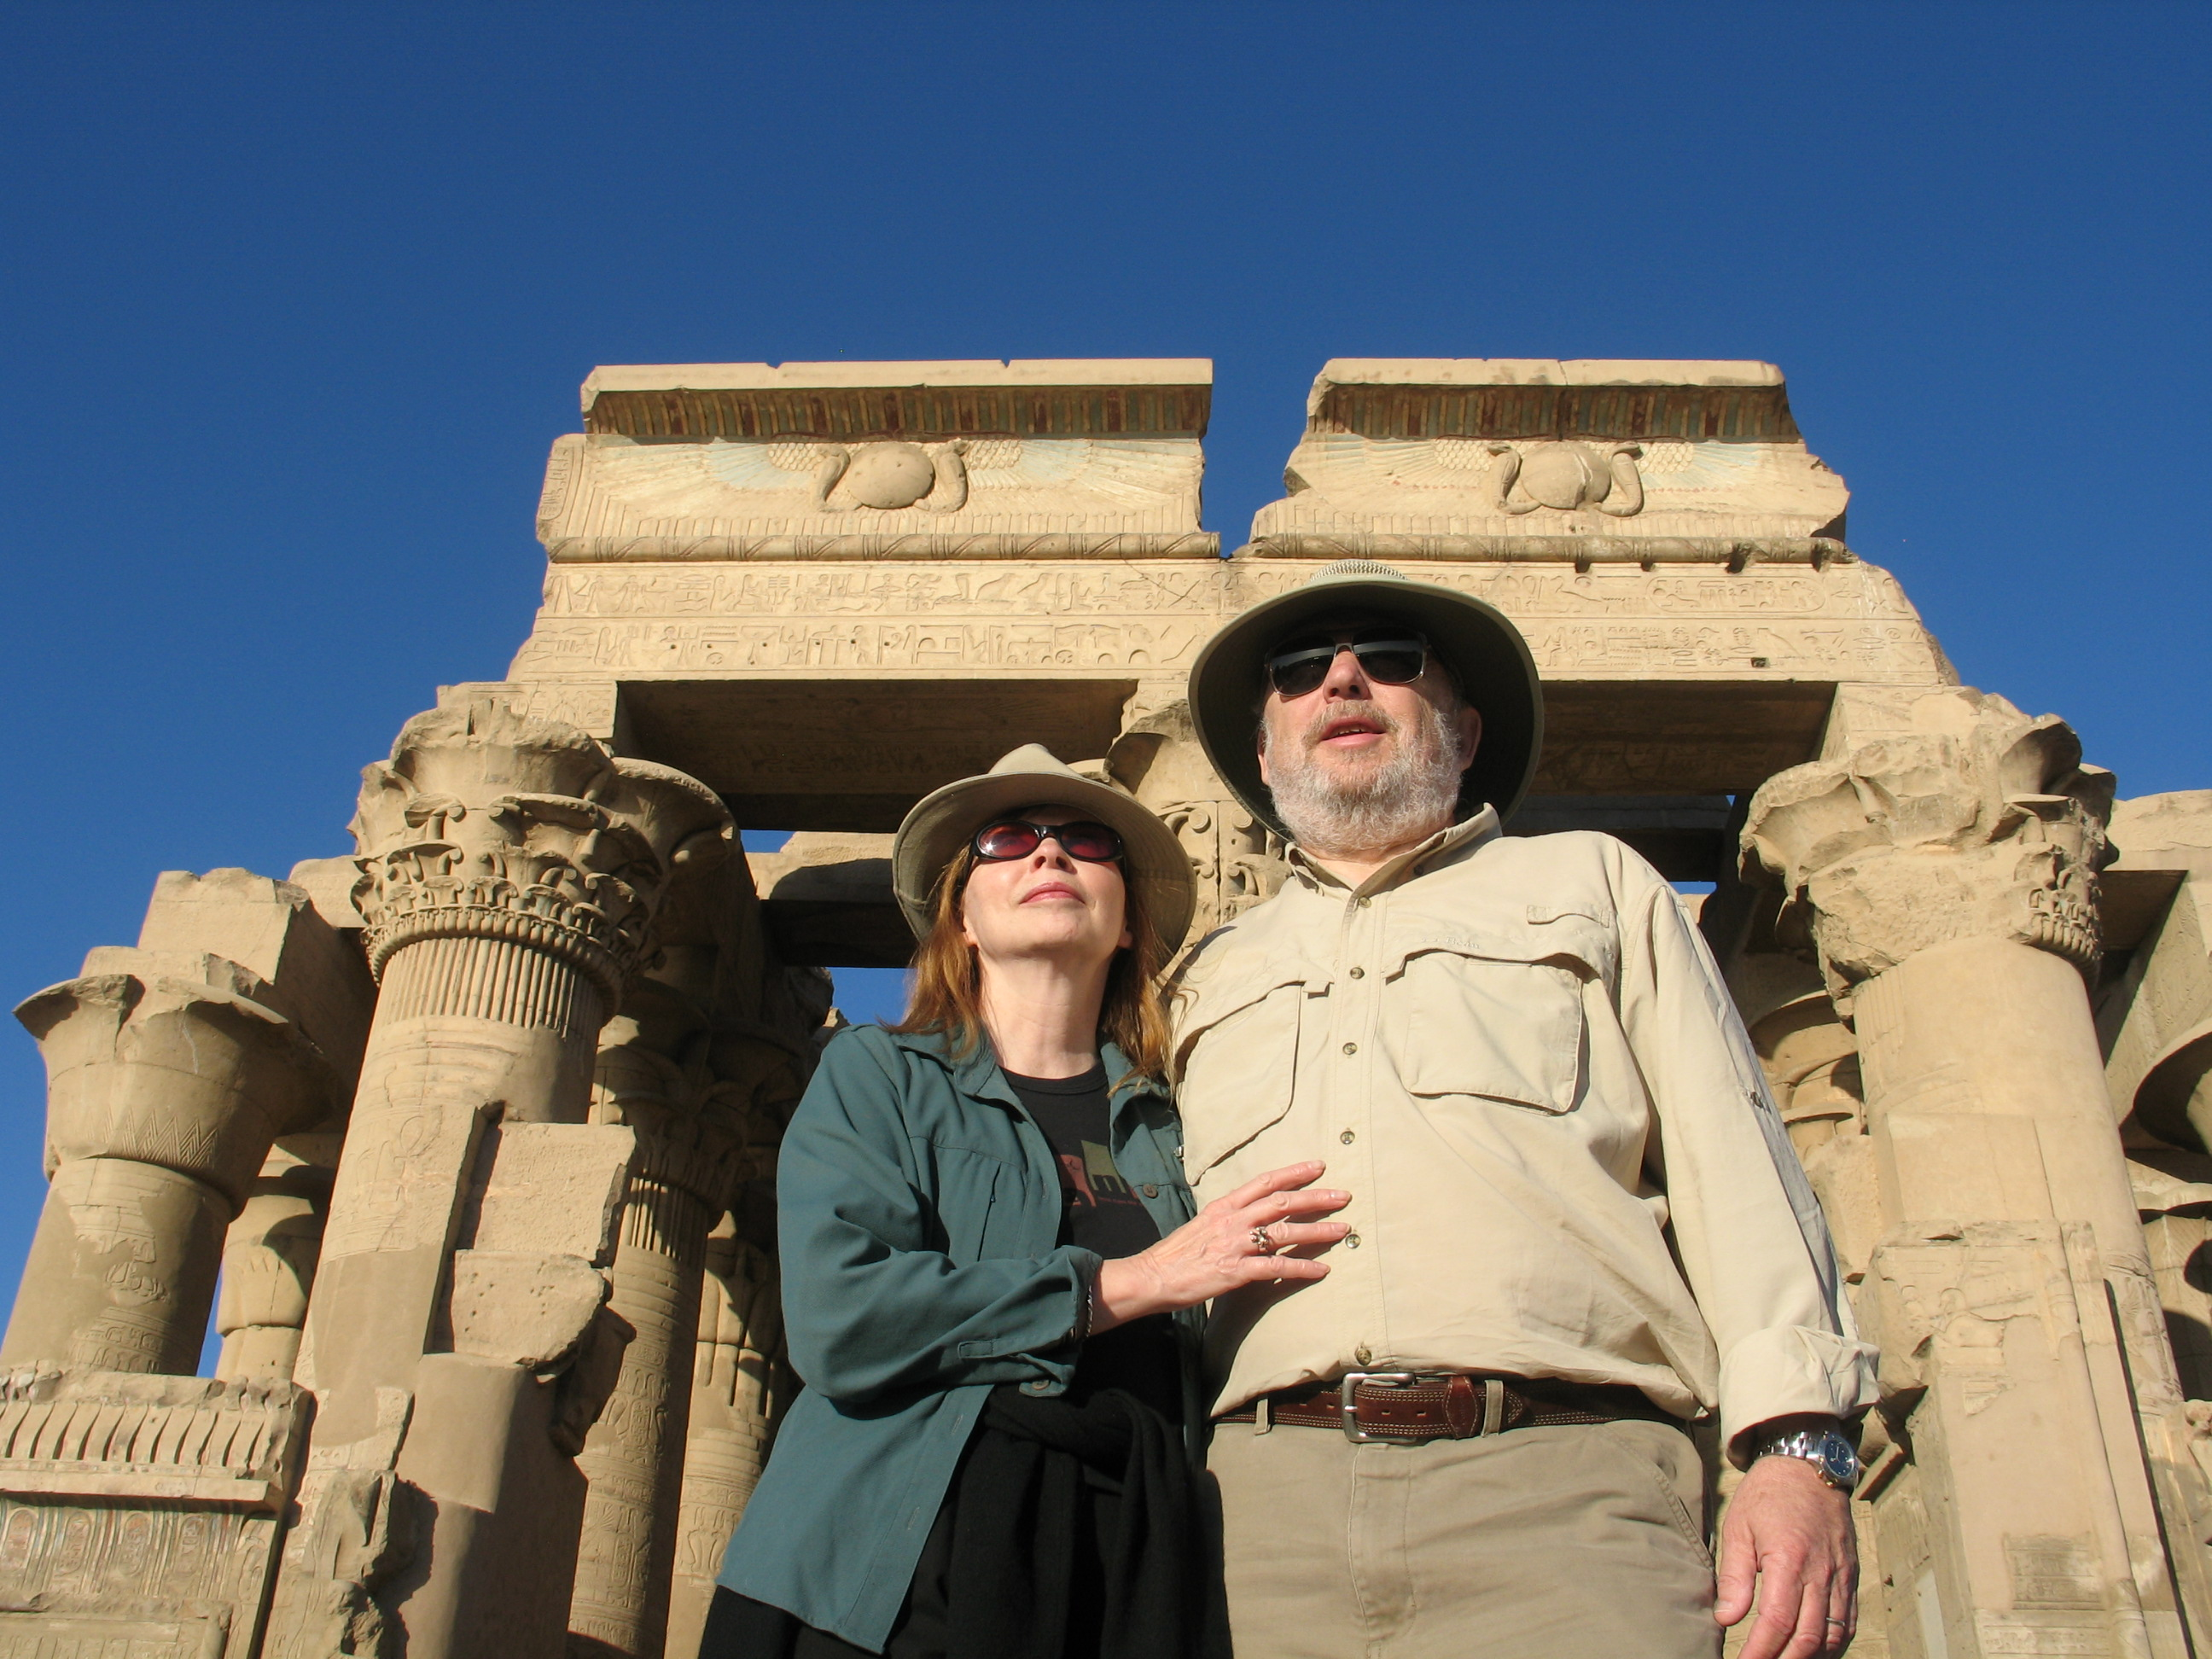 Karin and Herb Meiselman standing in front of an Egyptian structure.